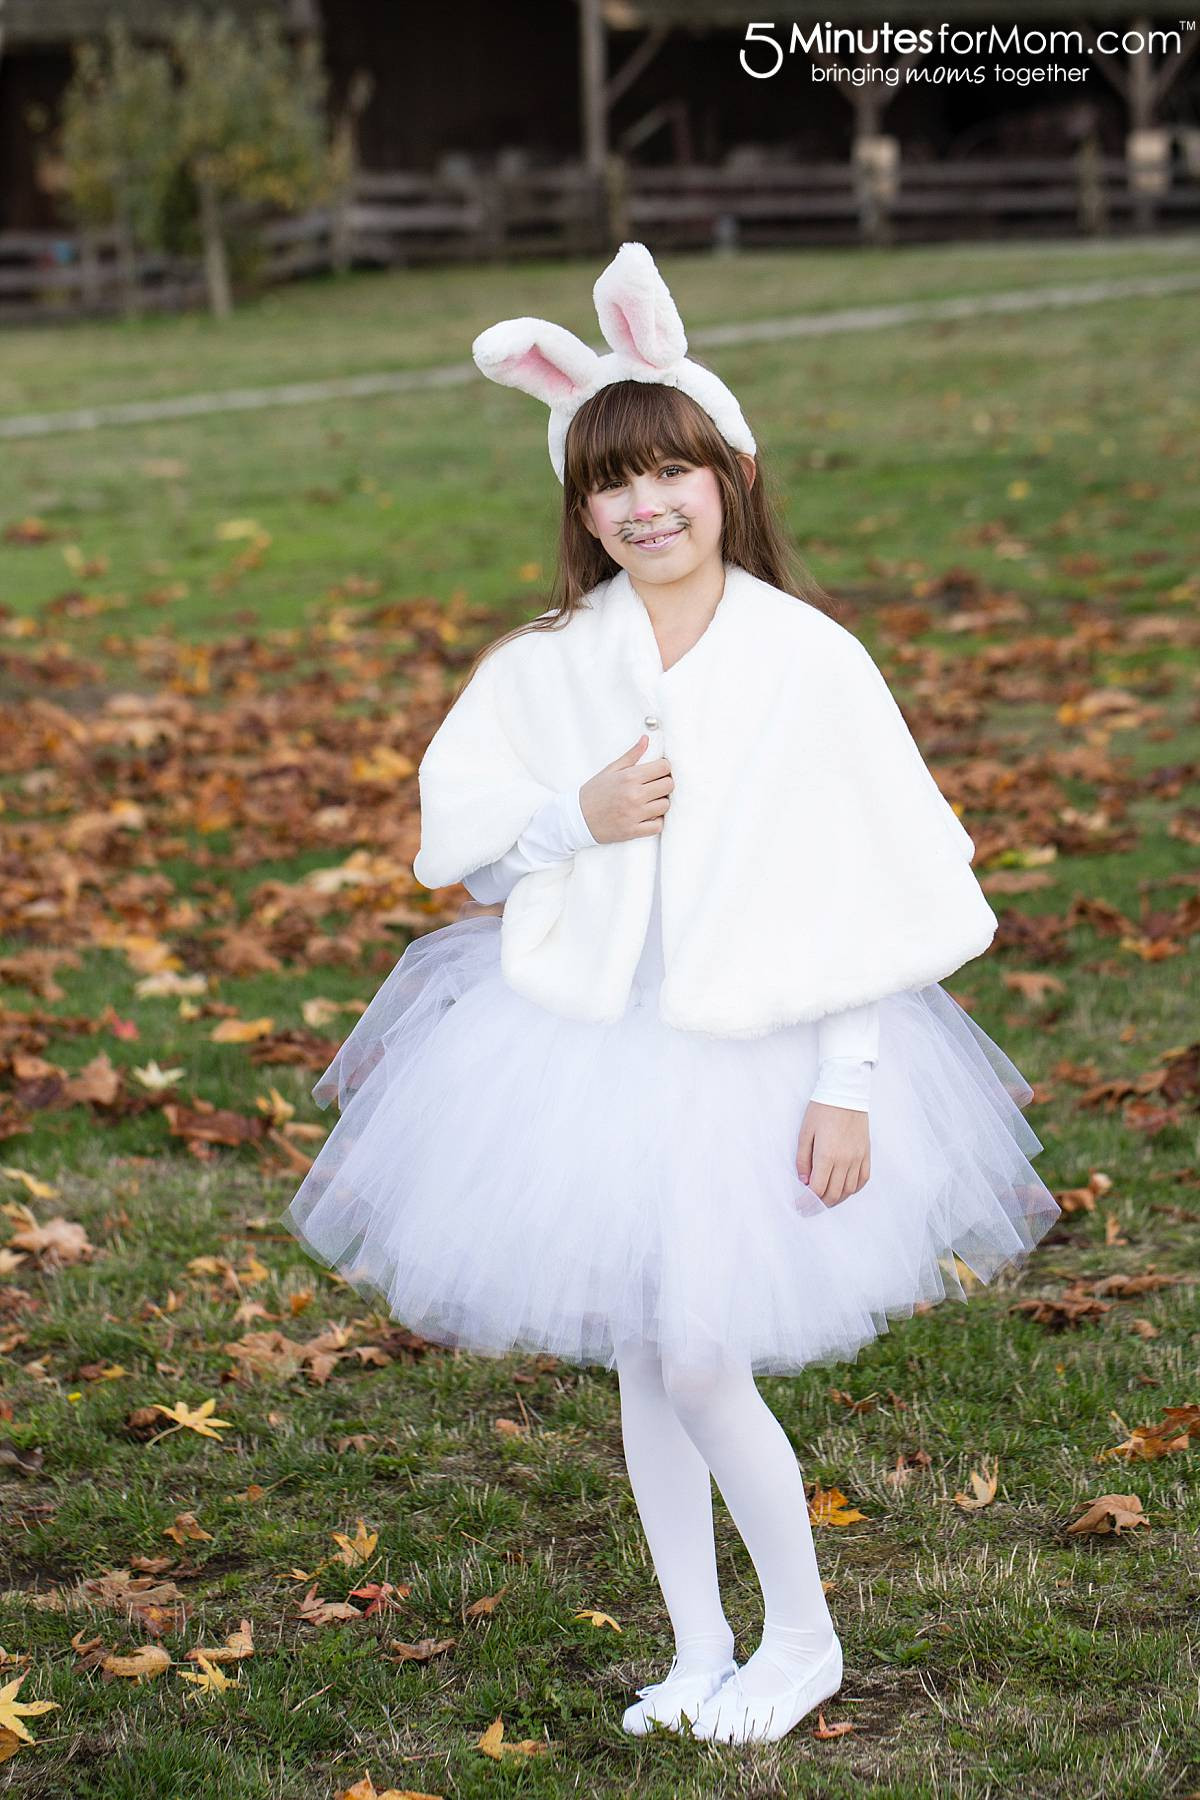 DIY Bunny Costume Toddler  DIY Girls Halloween Costumes 5 Minutes for Mom